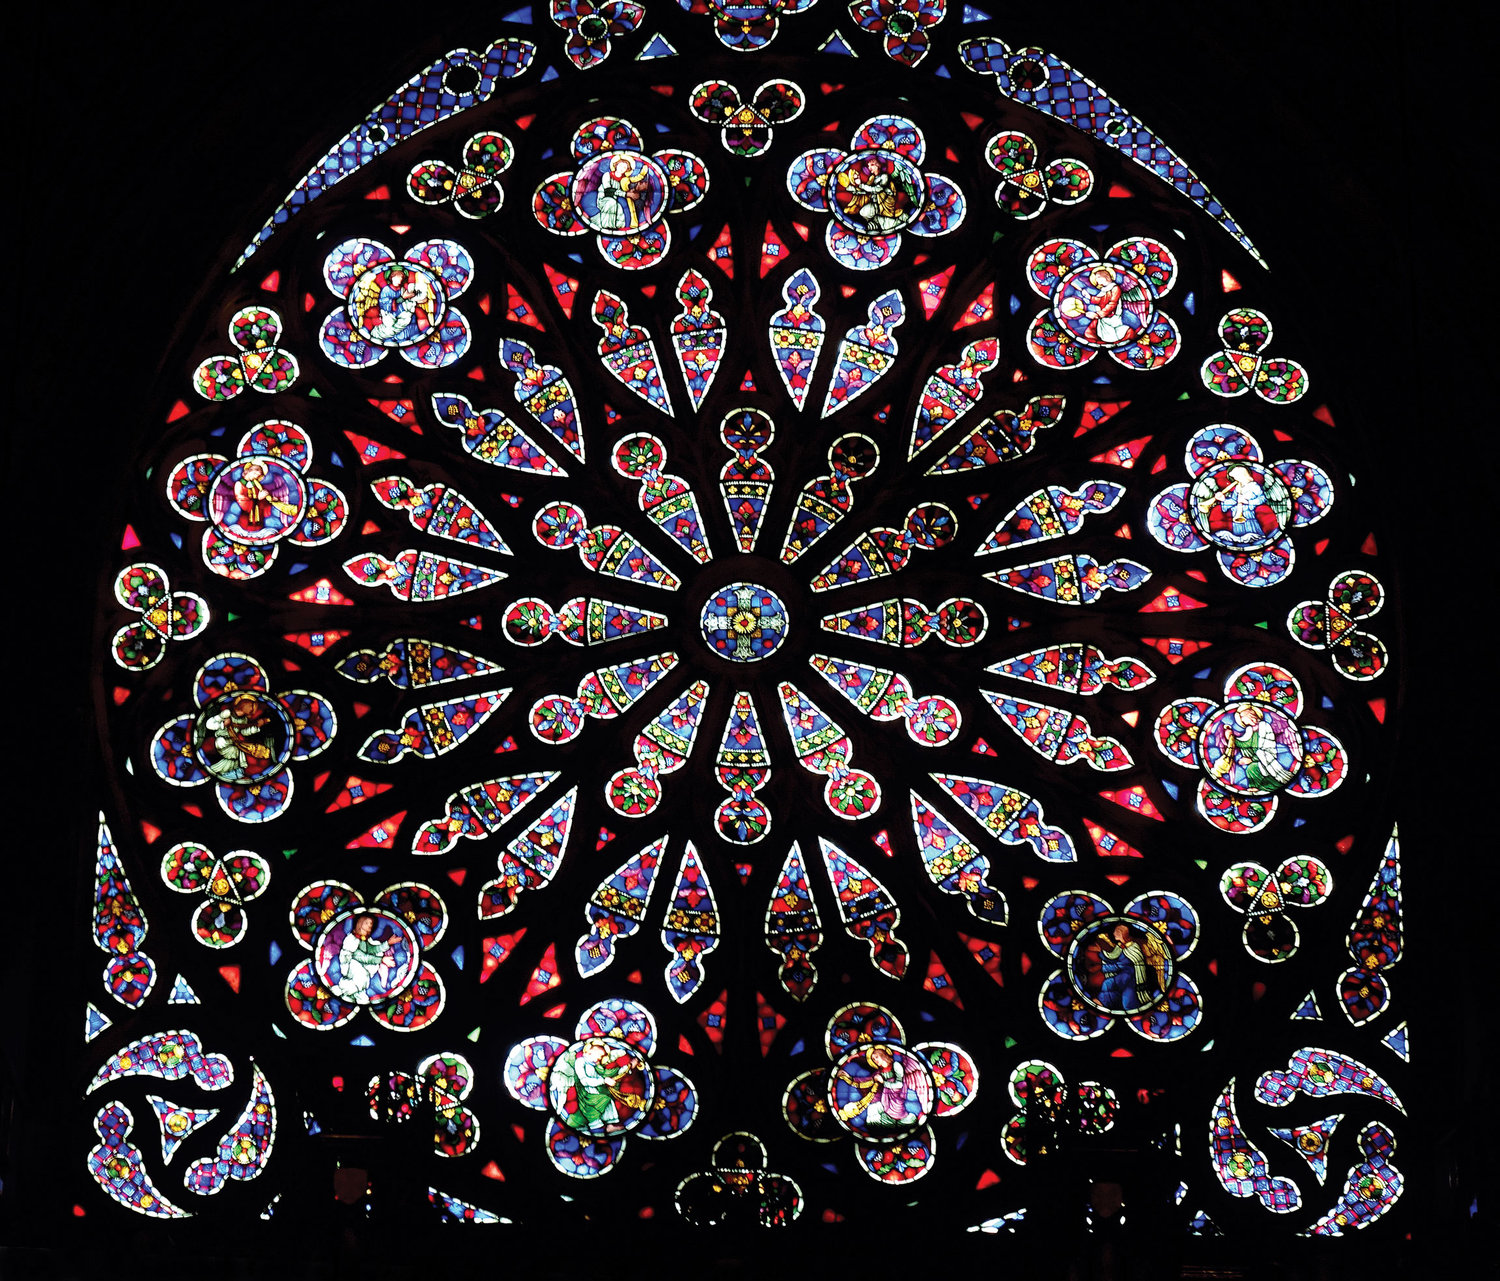 The newly restored Rose Window was unveiled at the end of Mass at Blessed Sacrament Church in Manhattan April 7.